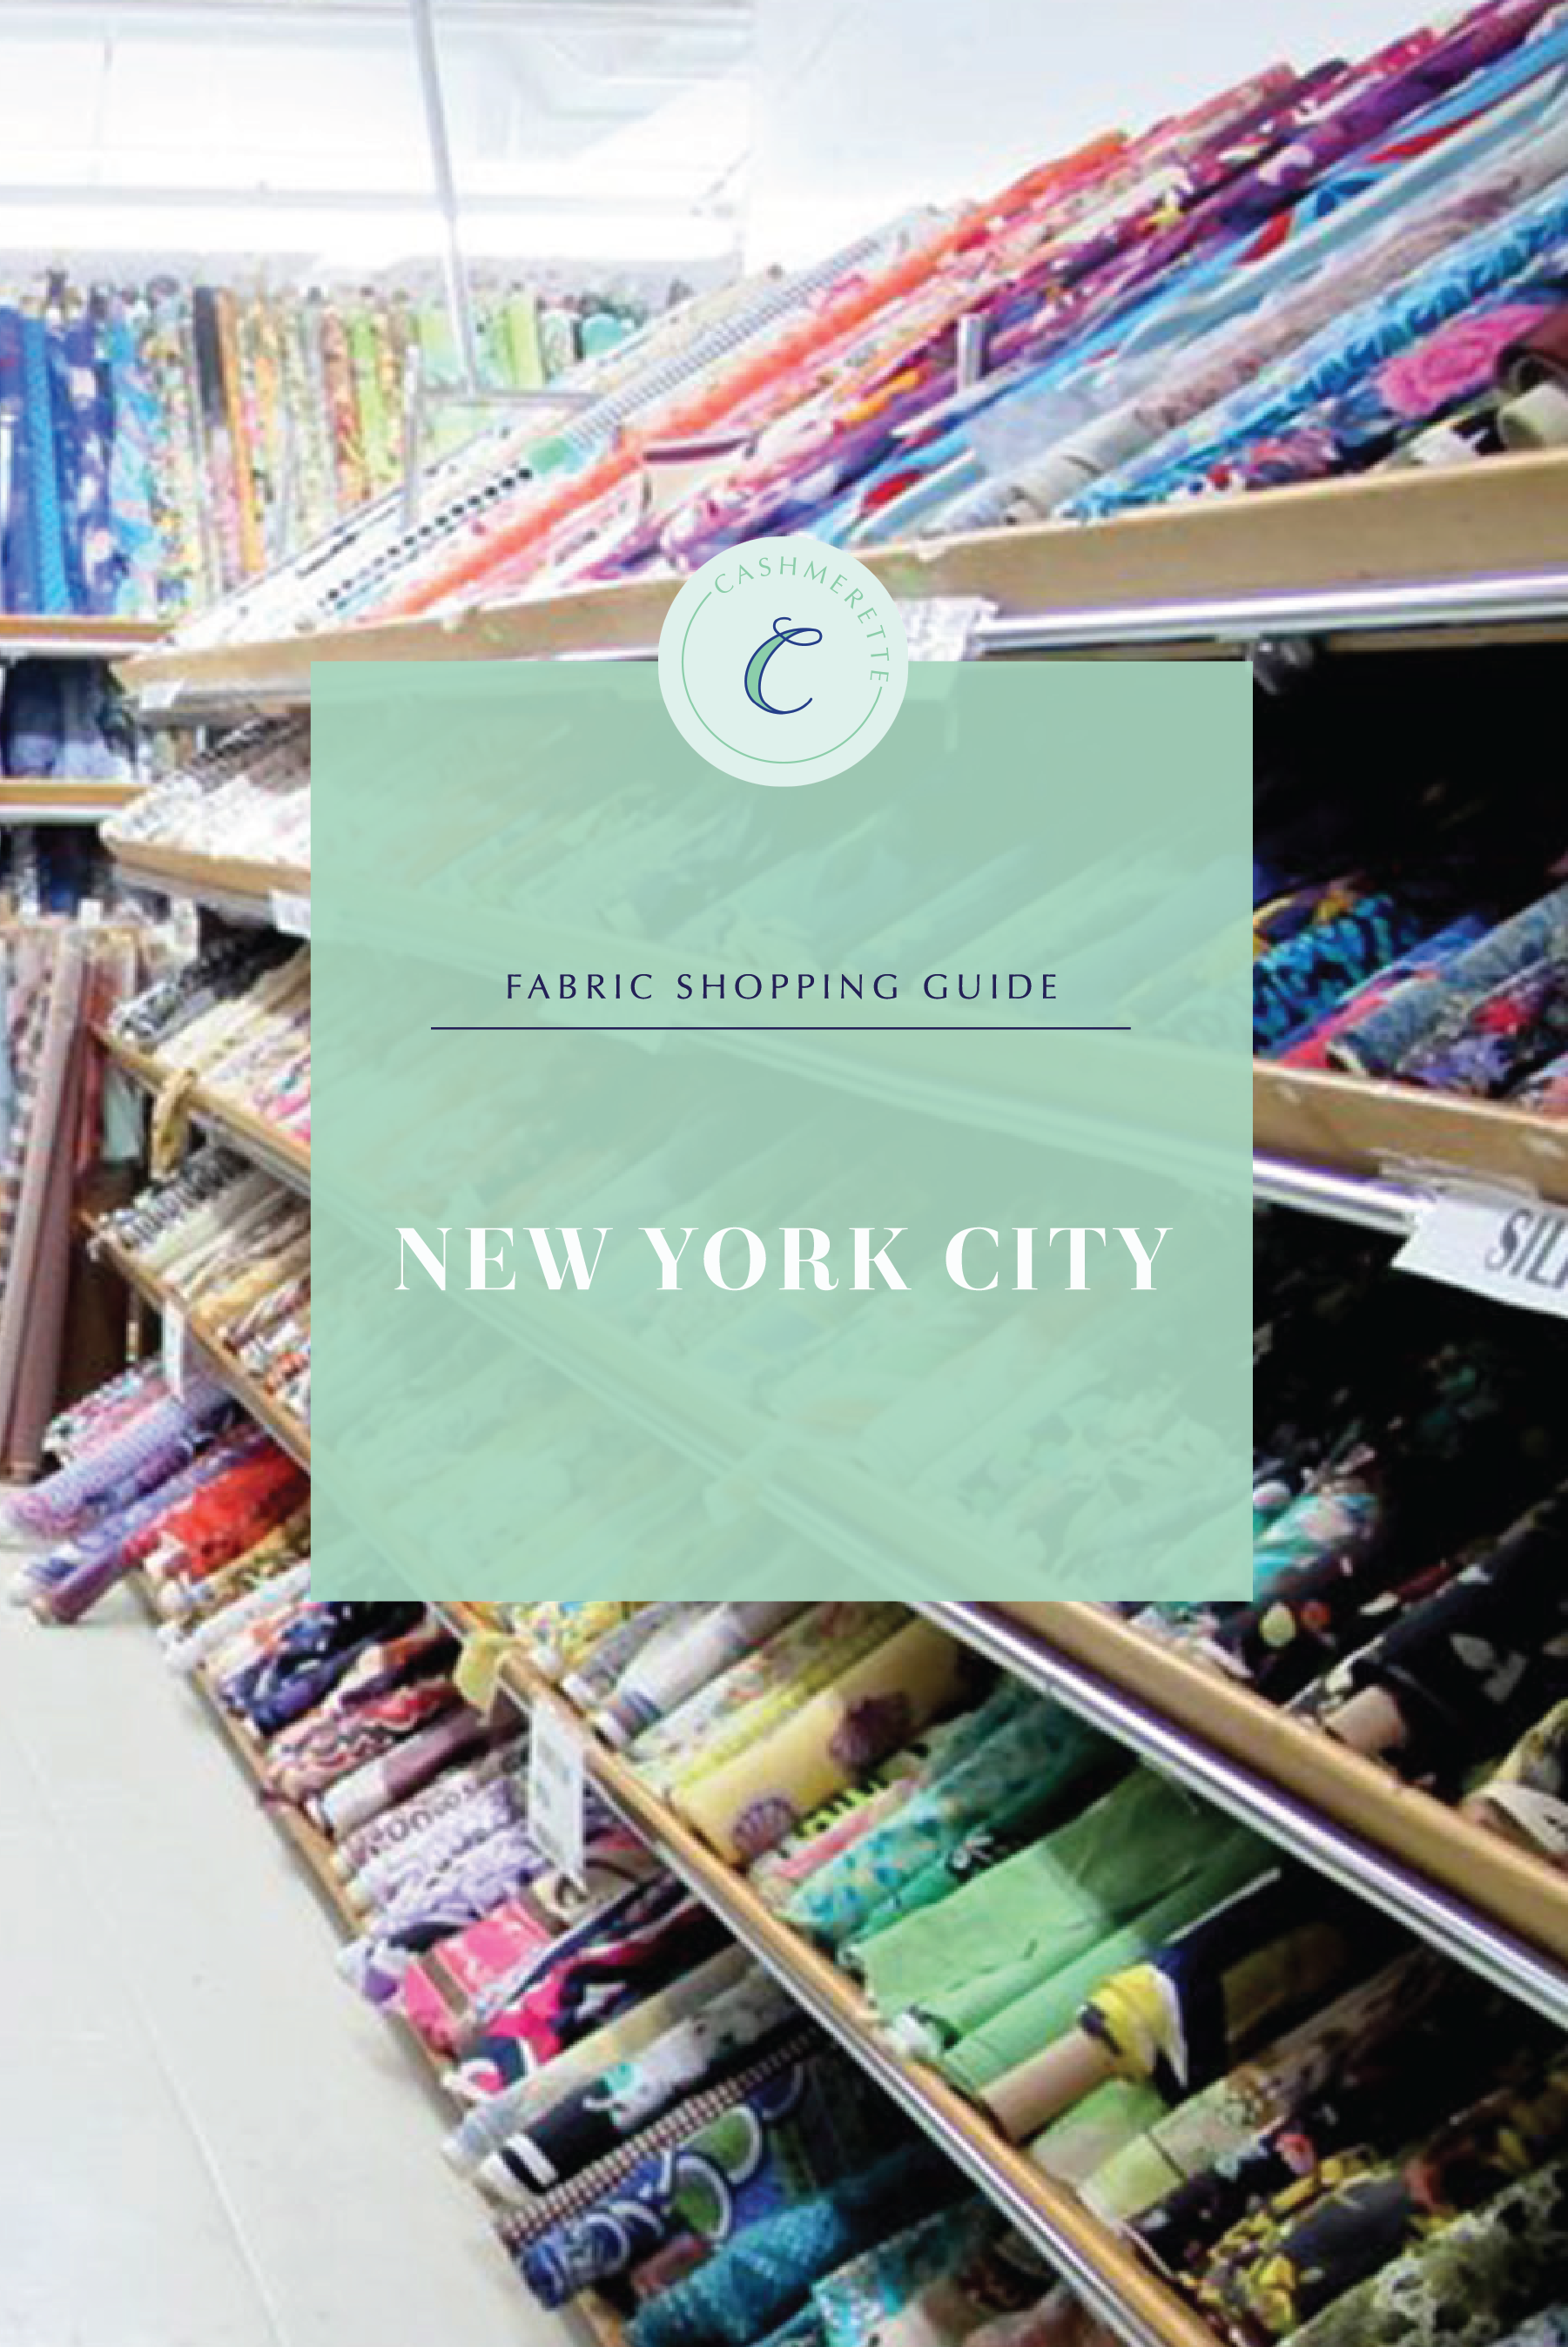 Sewing Stores Near Me : sewing, stores, Garment, District, Cashmerette